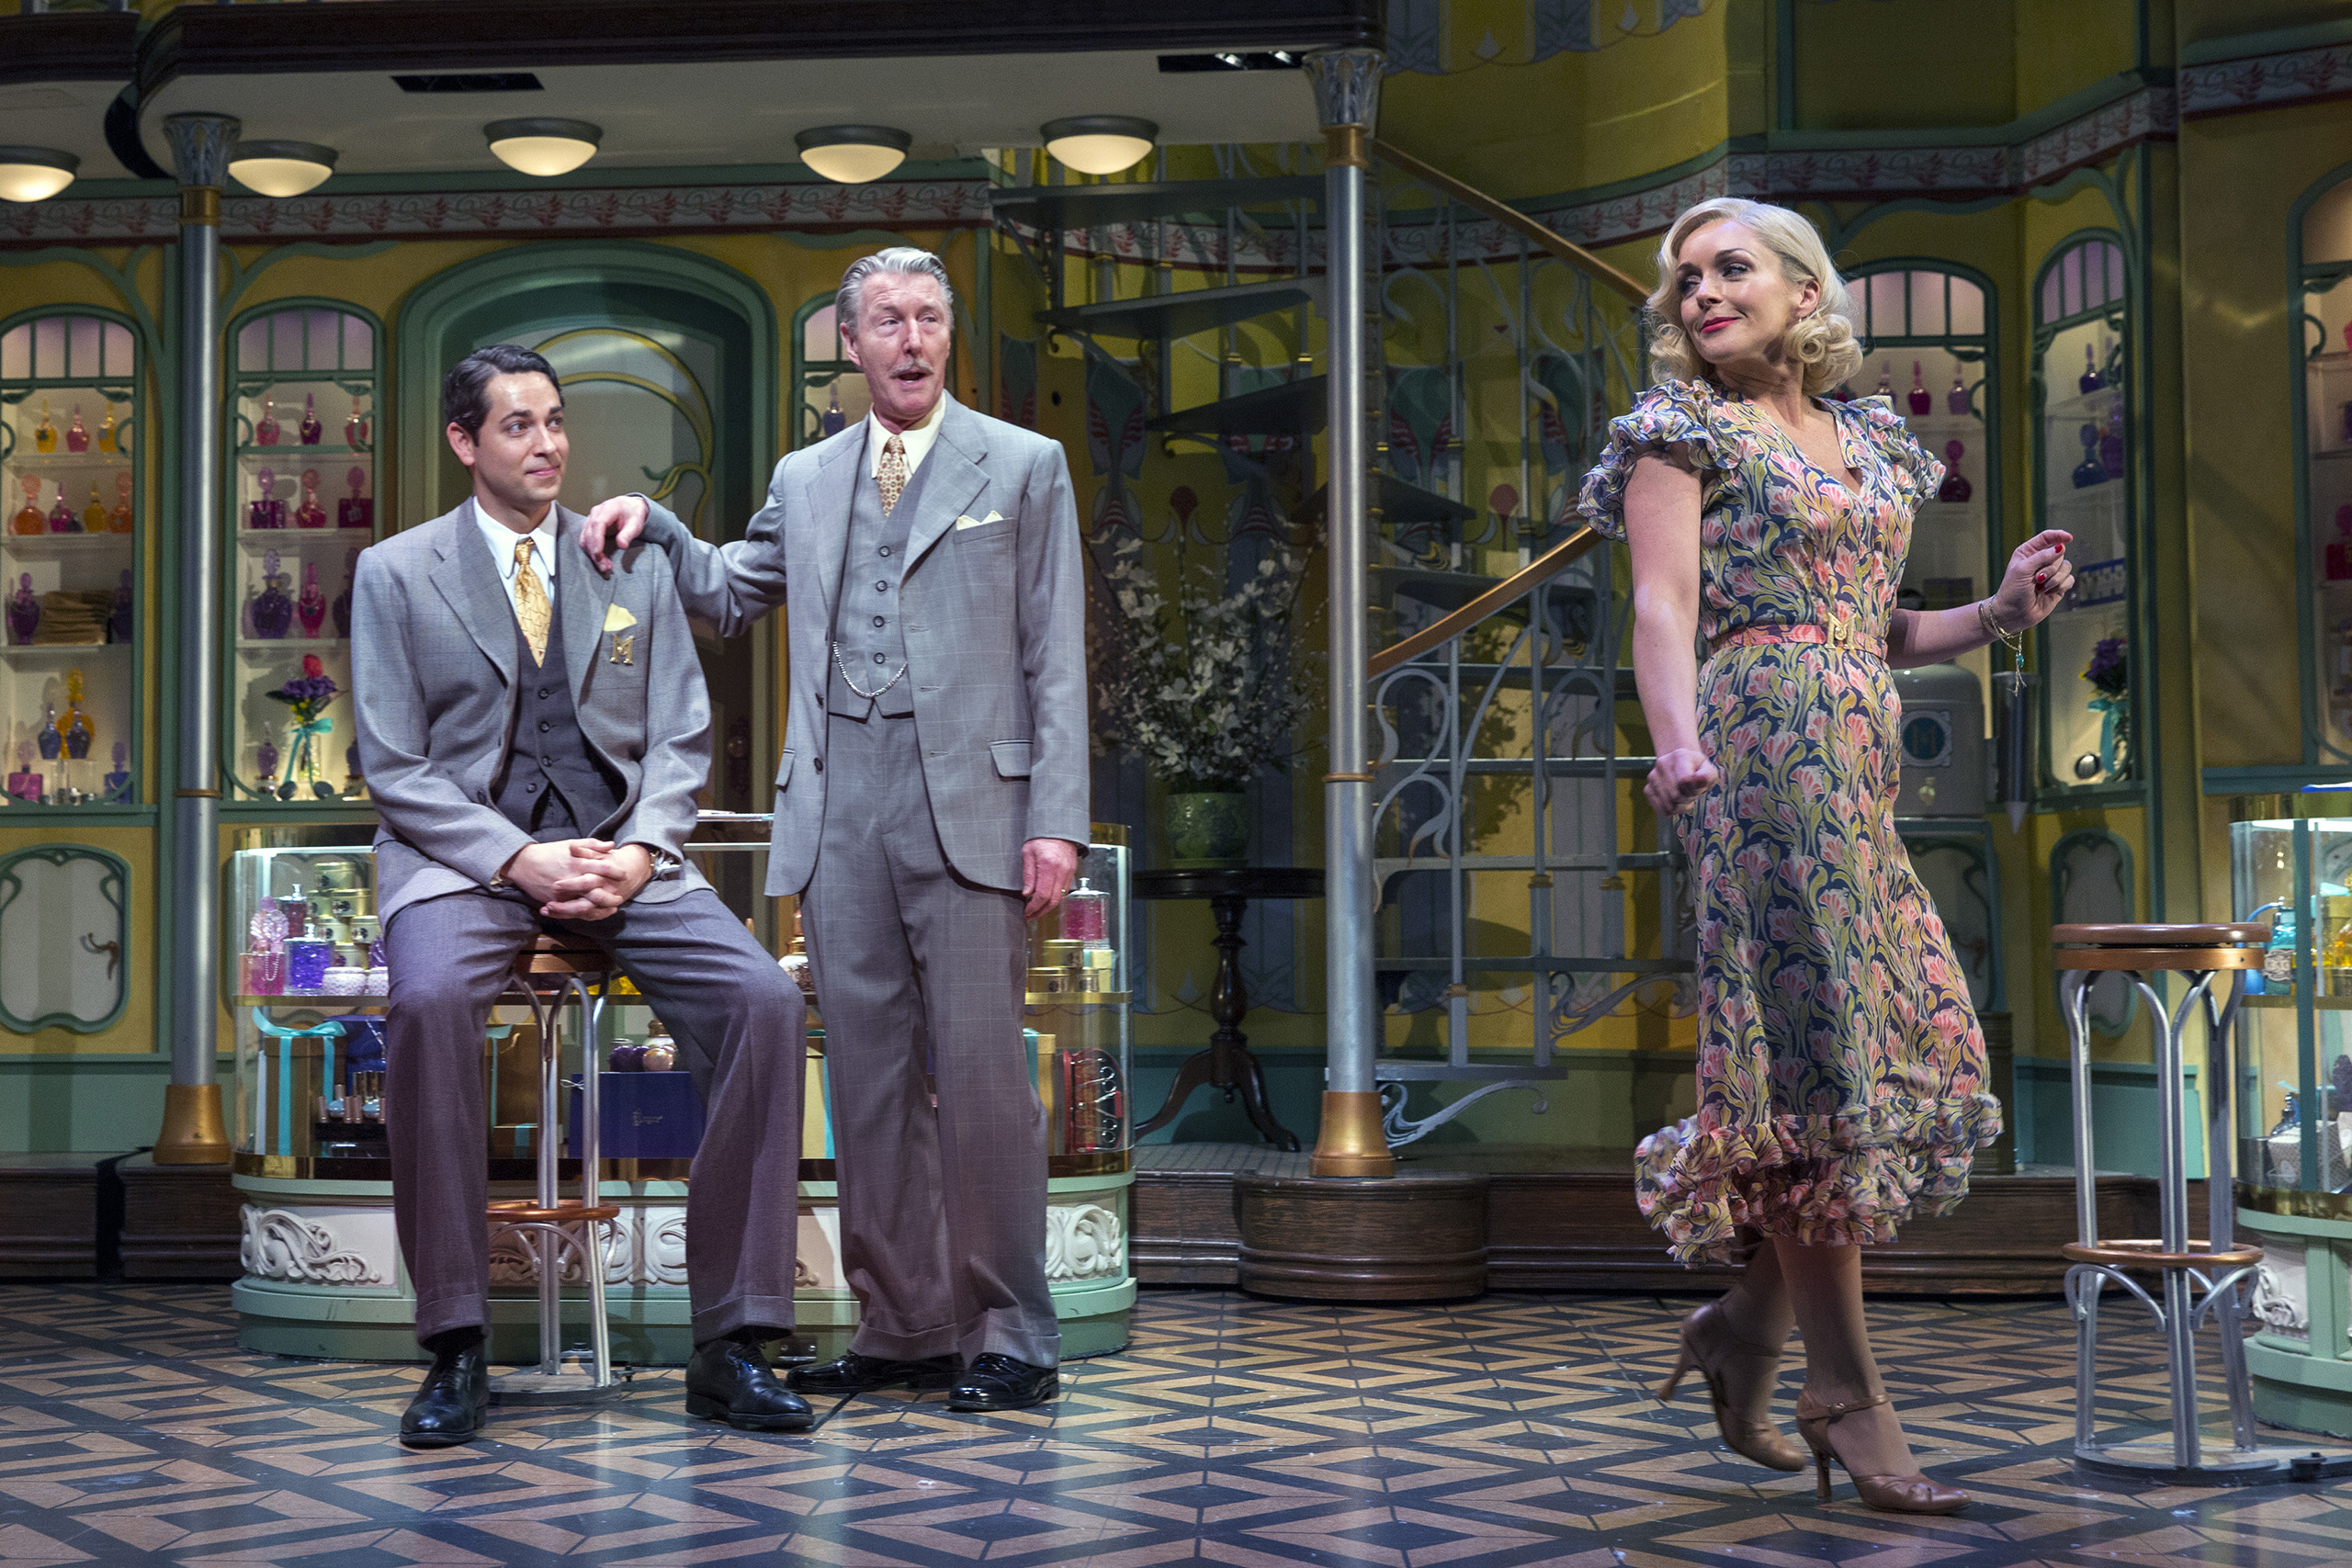 PHOTO MOVED IN ADVANCE AND NOT FOR USE - ONLINE OR IN PRINT - BEFORE MARCH 6, 2016. -- From left: Zachary Levi, Byron Jennings and Jane Krakowski in  She Loves Me  in New York, Feb. 19, 2016. The musical tells the story of two feuding perfume-shop employees who find epistolary romance as unknowing pen pals. (Sara Krulwich/The New York Times)